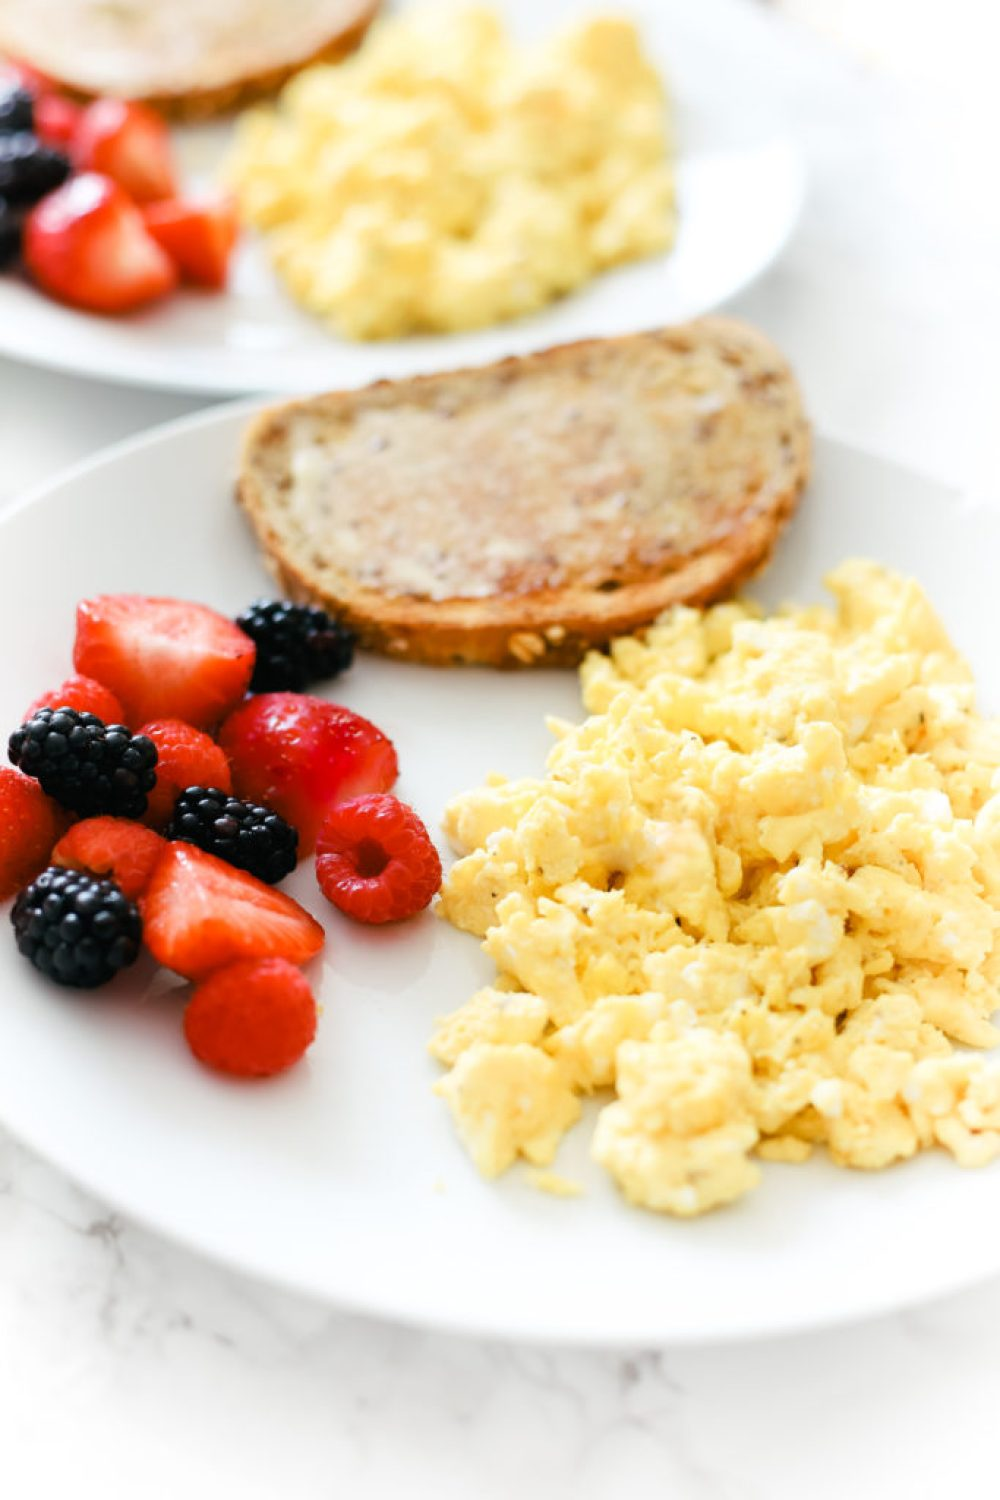 These perfect fluffy scrambled eggs make for a healthy, quick and easy breakfast every time. Naturally low in carbs, keto, and gluten-free. Breakfast | Brunch | Cooked Eggs | Keto Eggs | One Pan Breakfast | Creamy Eggs | Healthy | Weight Loss | How to Scramble Eggs | The Best Scrambled Egg Recipe | Family Friendly Recipe | Traditional Eggs | Egg Recipes | Toddler Food | Kid Friendly | Recipes for Kids |